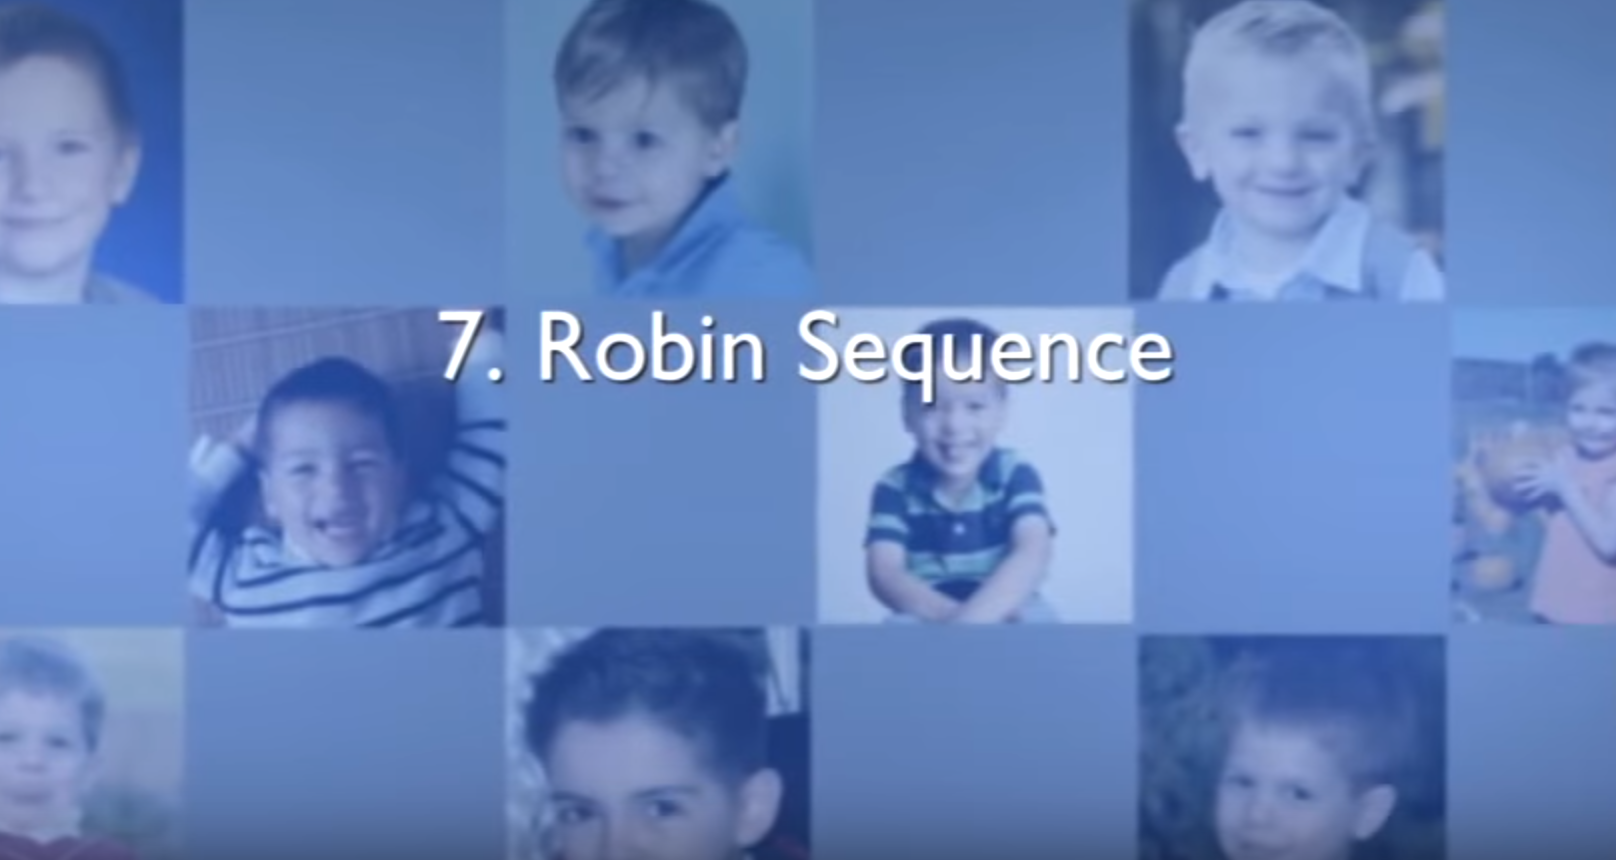 Chapter 7 – Robin Sequence